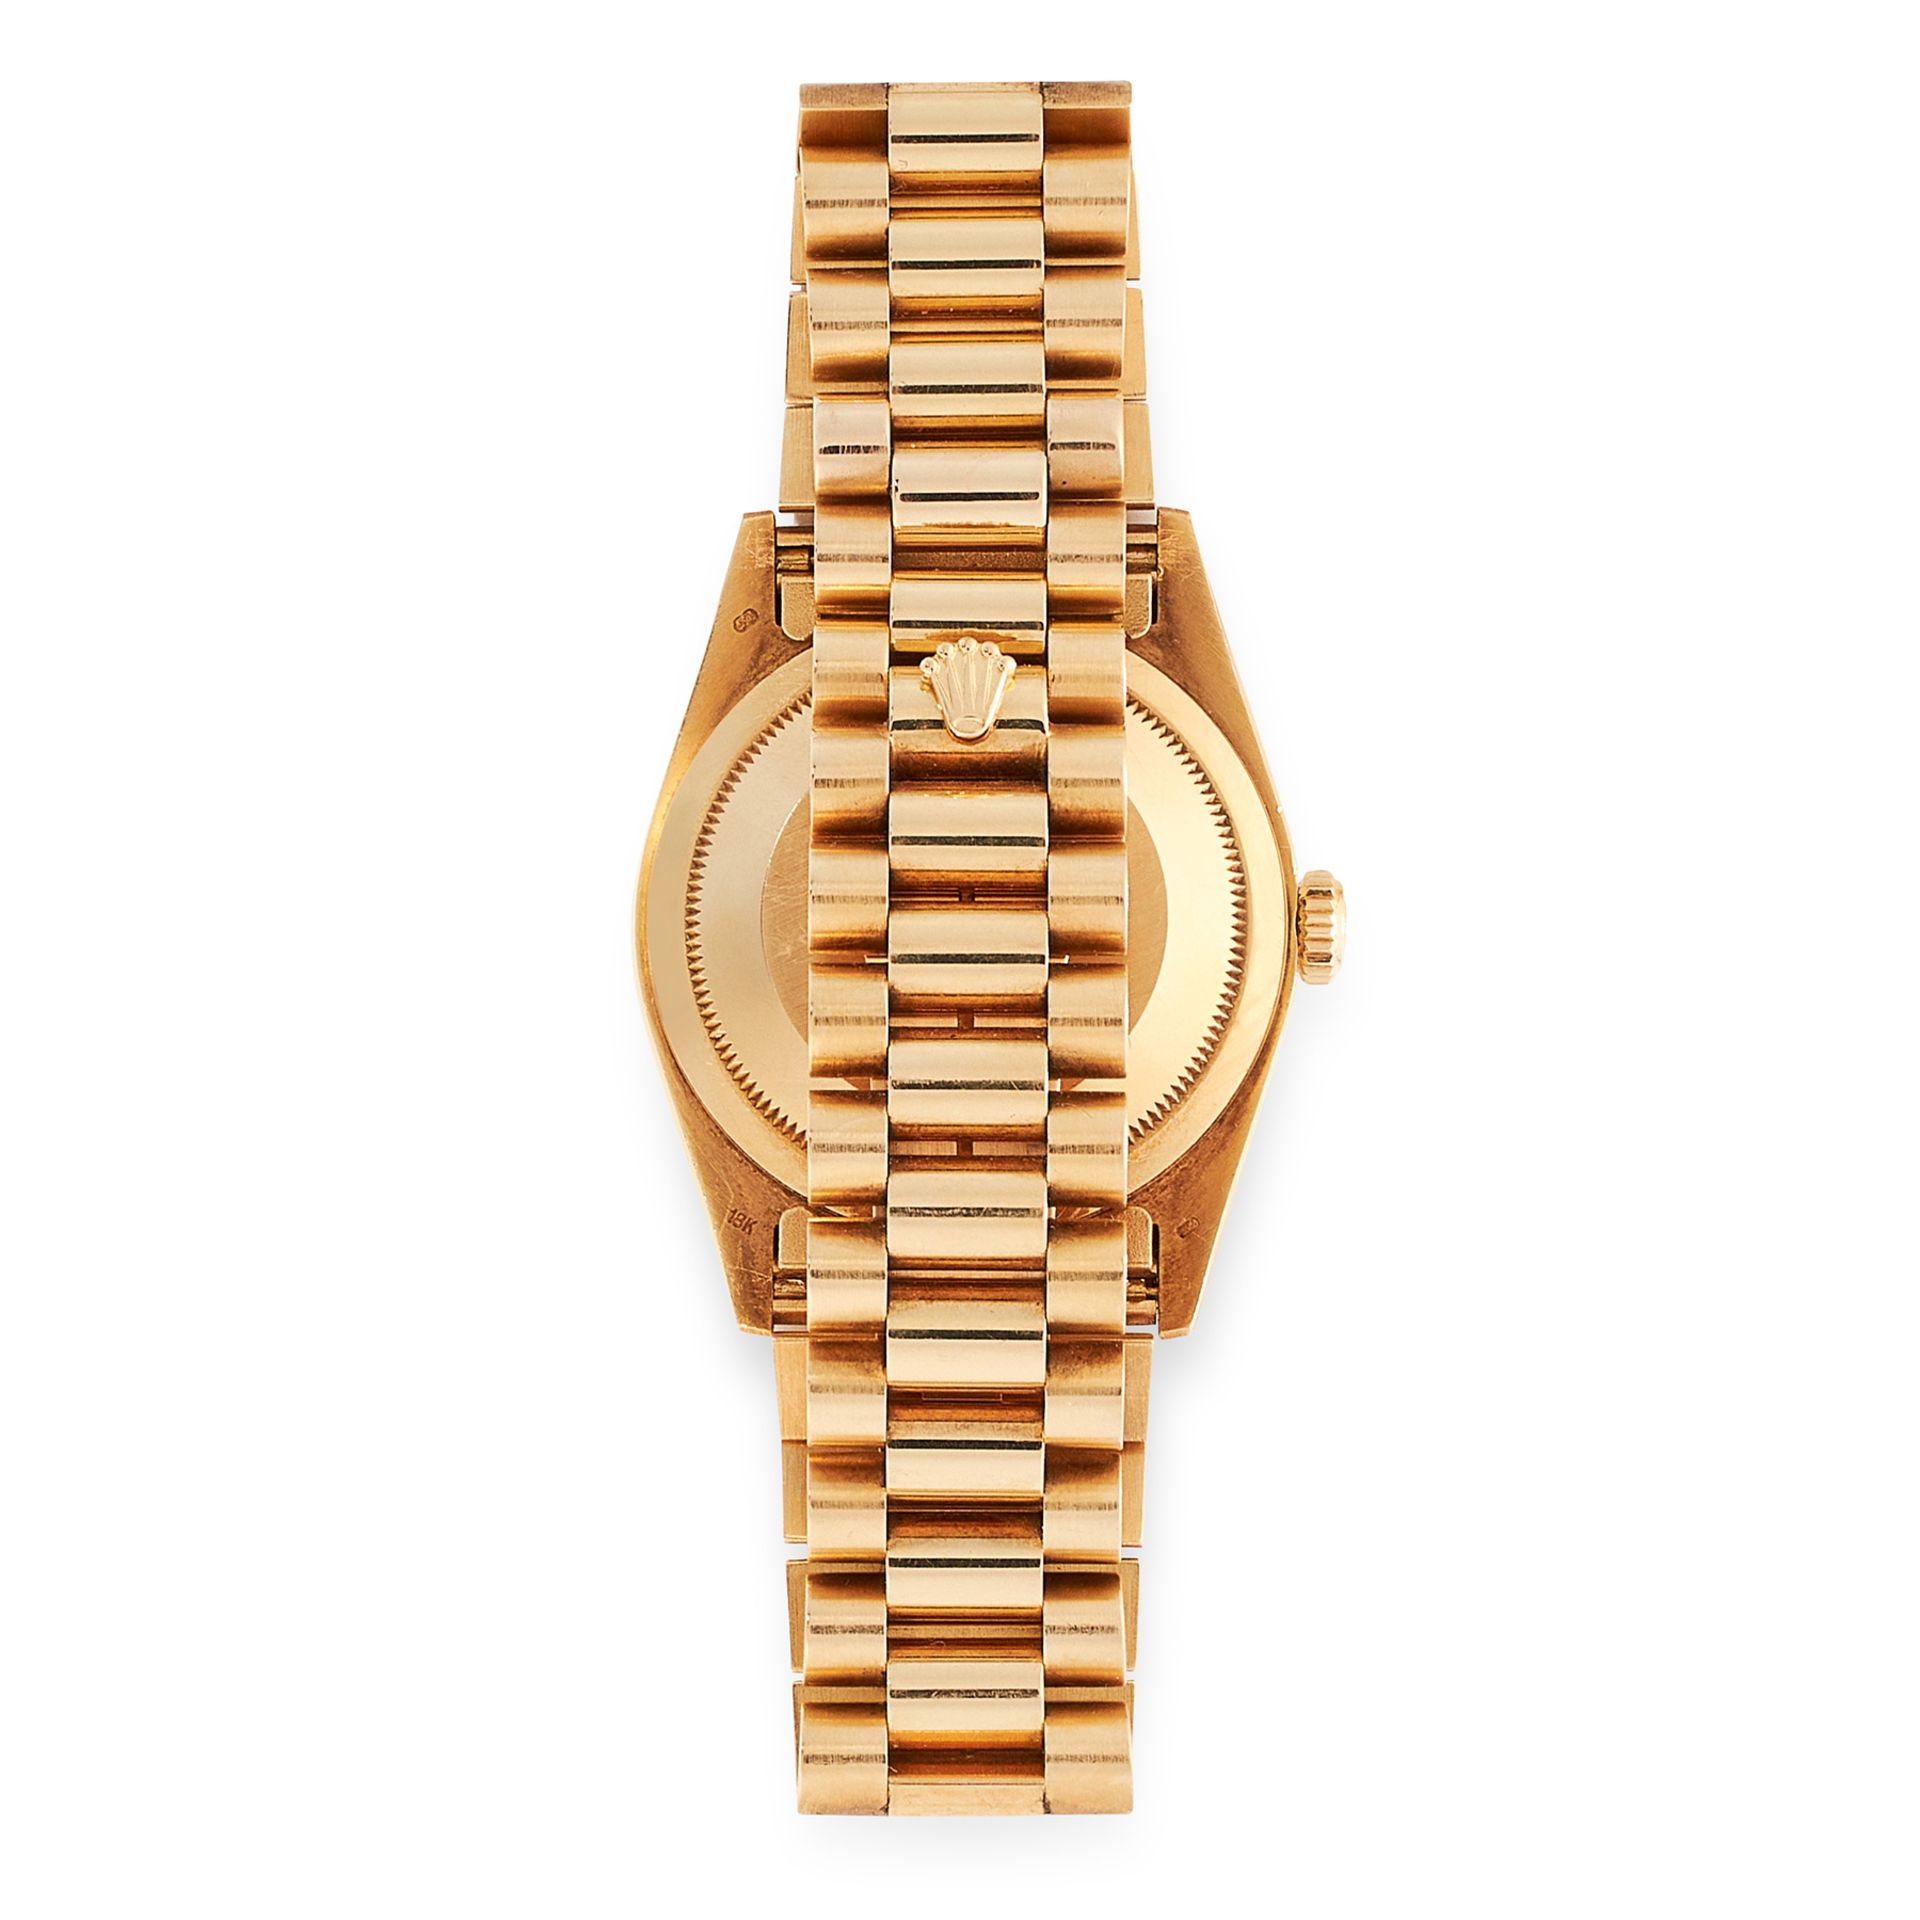 Los 71 - A GENT'S OYSTER PERPETUAL DAY-DATE WRIST WATCH, ROLEX in 18ct yellow gold, the gold coloured dial